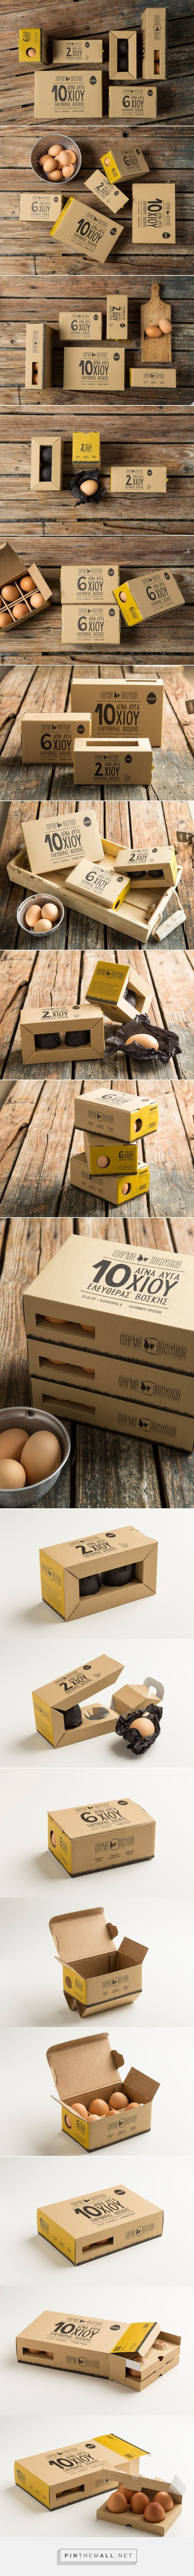 Pafylida Farm Packaging Range / Egg Packaging by Maria Romanidou PD